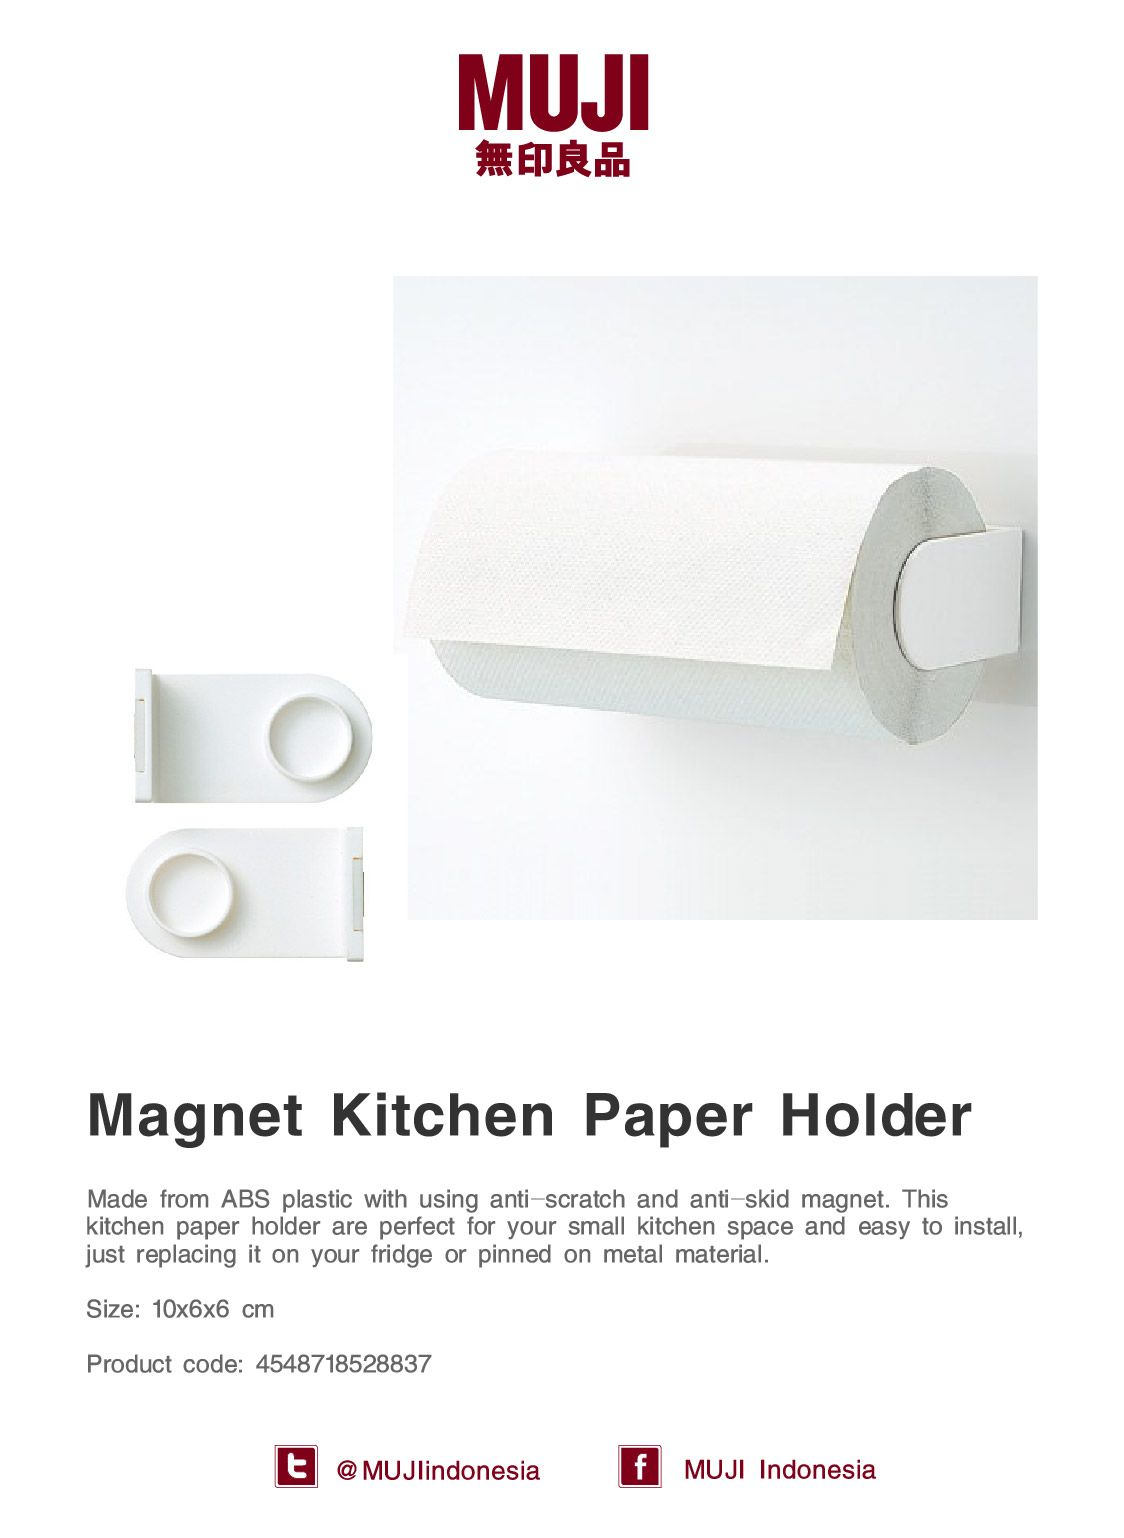 2f60bf9f0e  Magnet Kitchen Paper Holder  made from ABS plastic with anti-scratch    anti-skid magnet. Perfect for small kitchen.